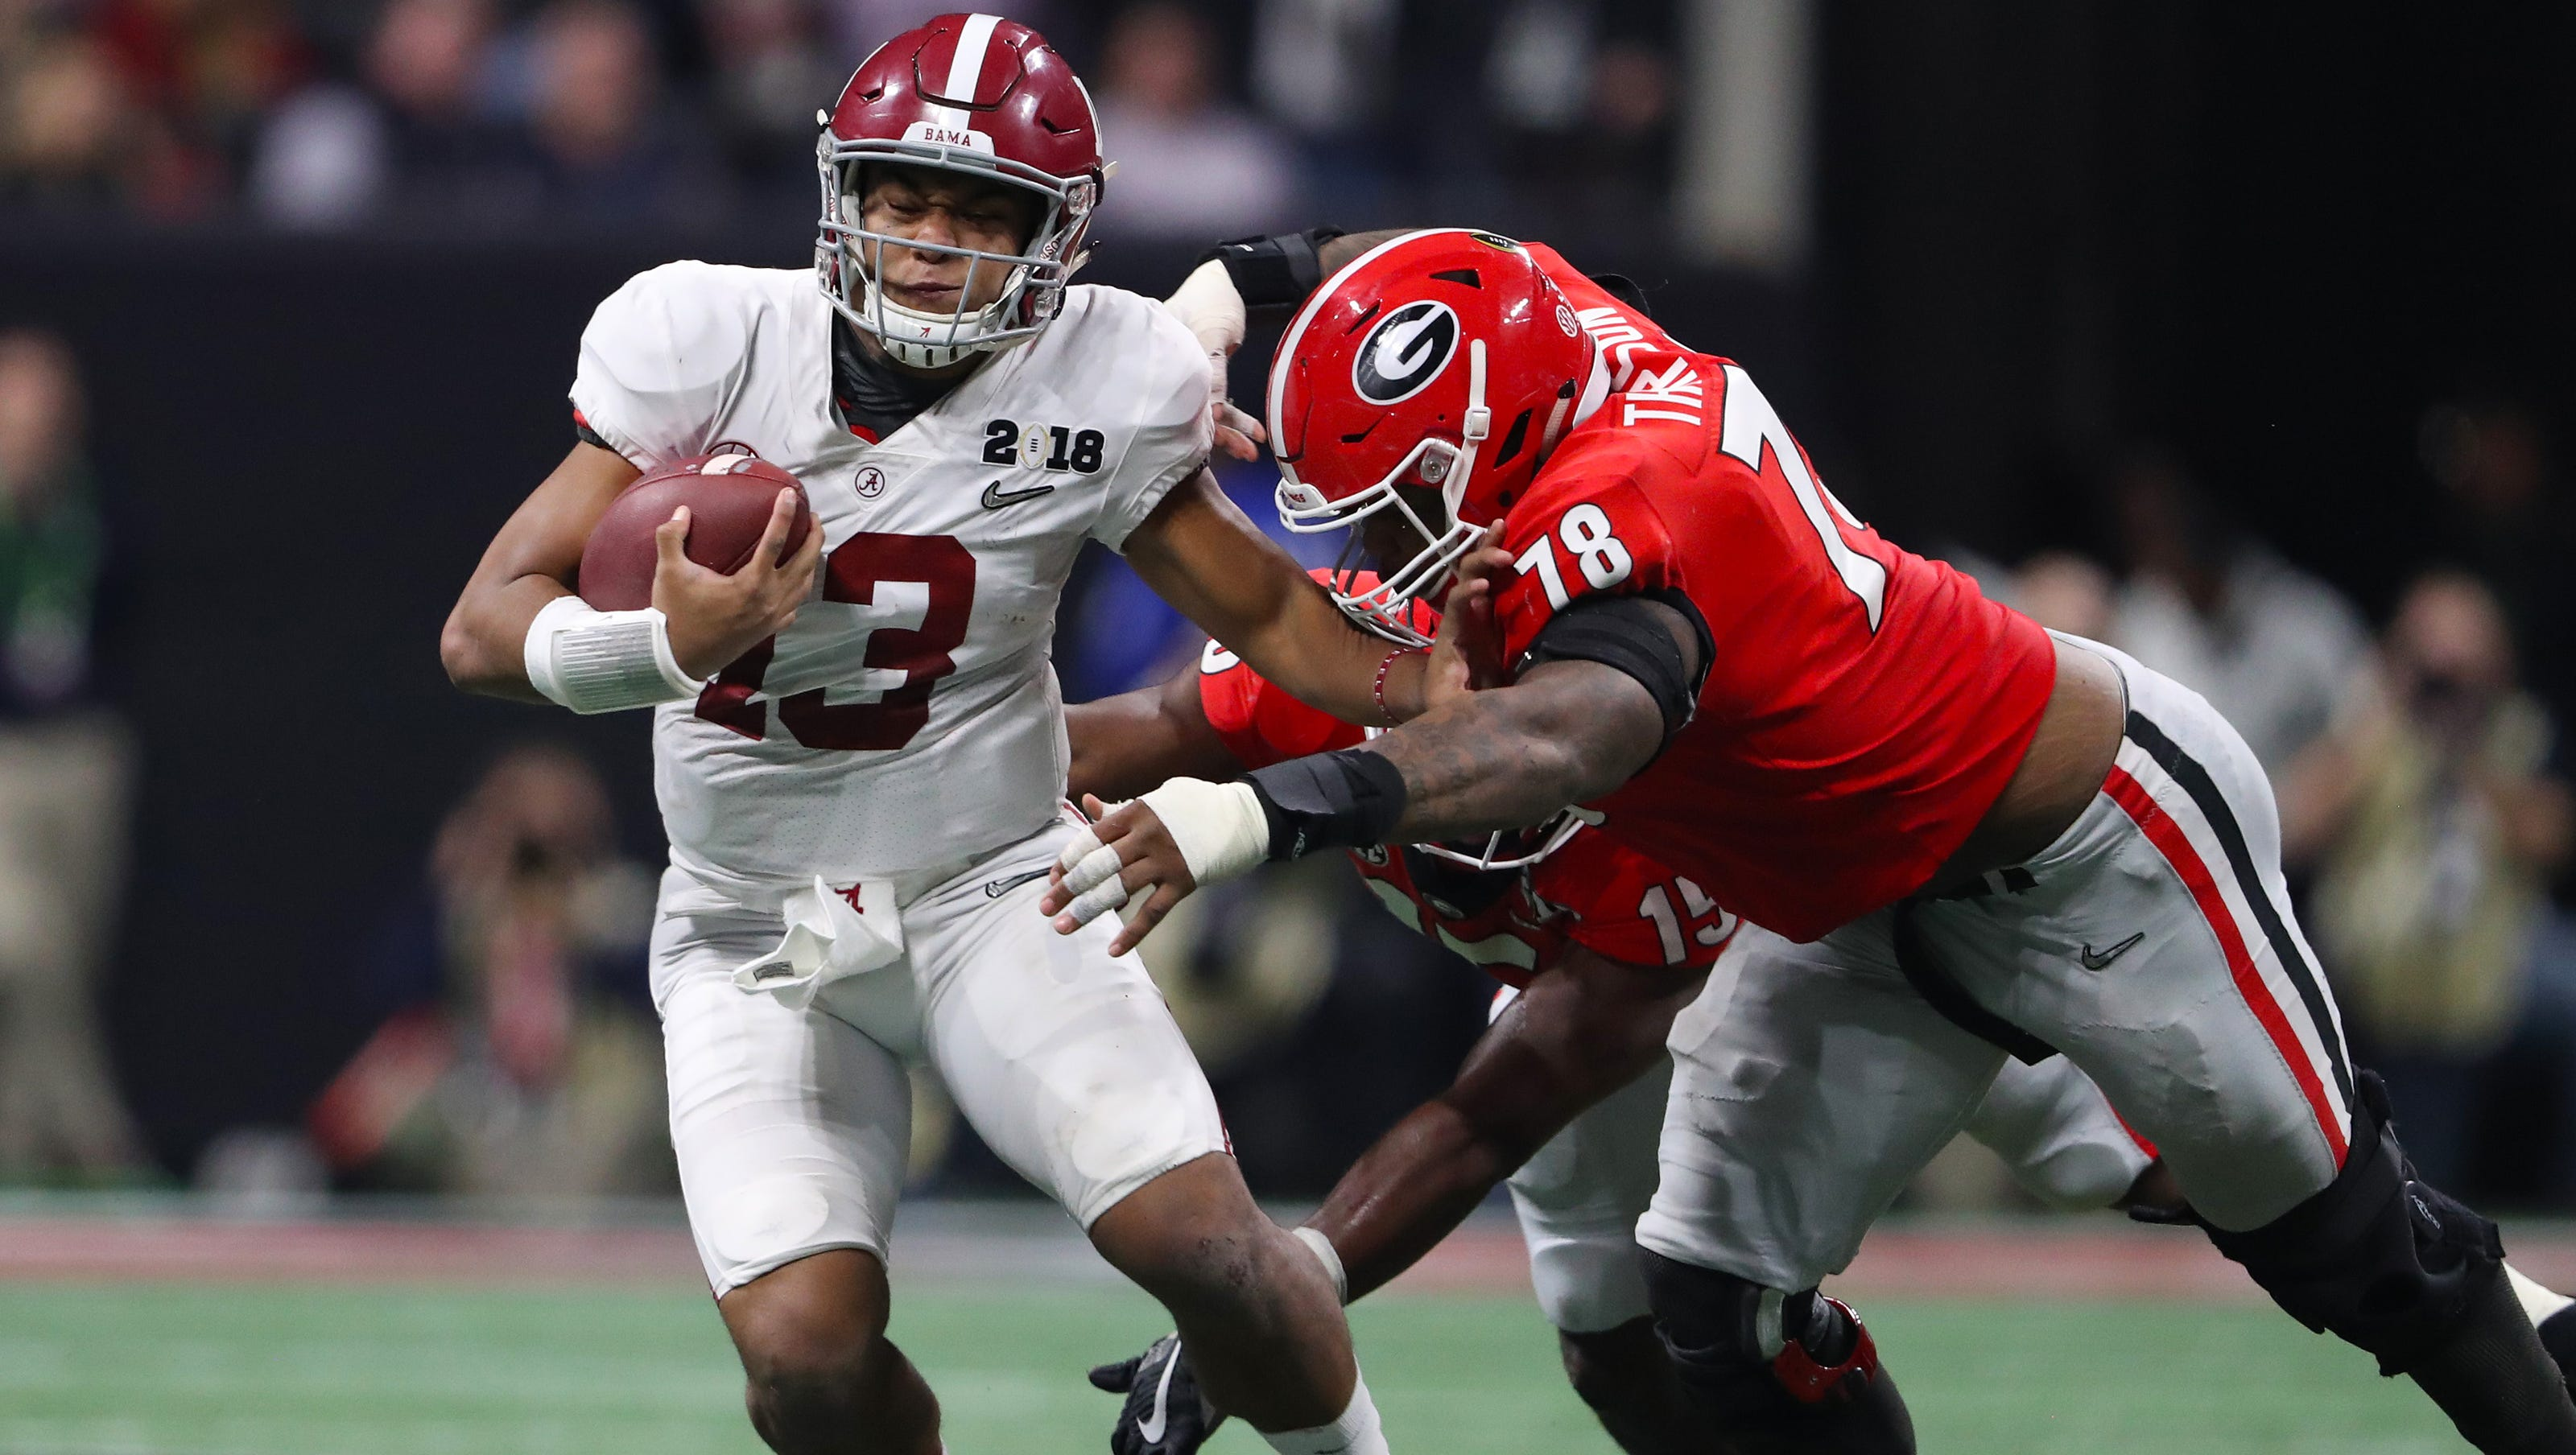 Amway Coaches Poll Top 25 College Football Team Outlooks